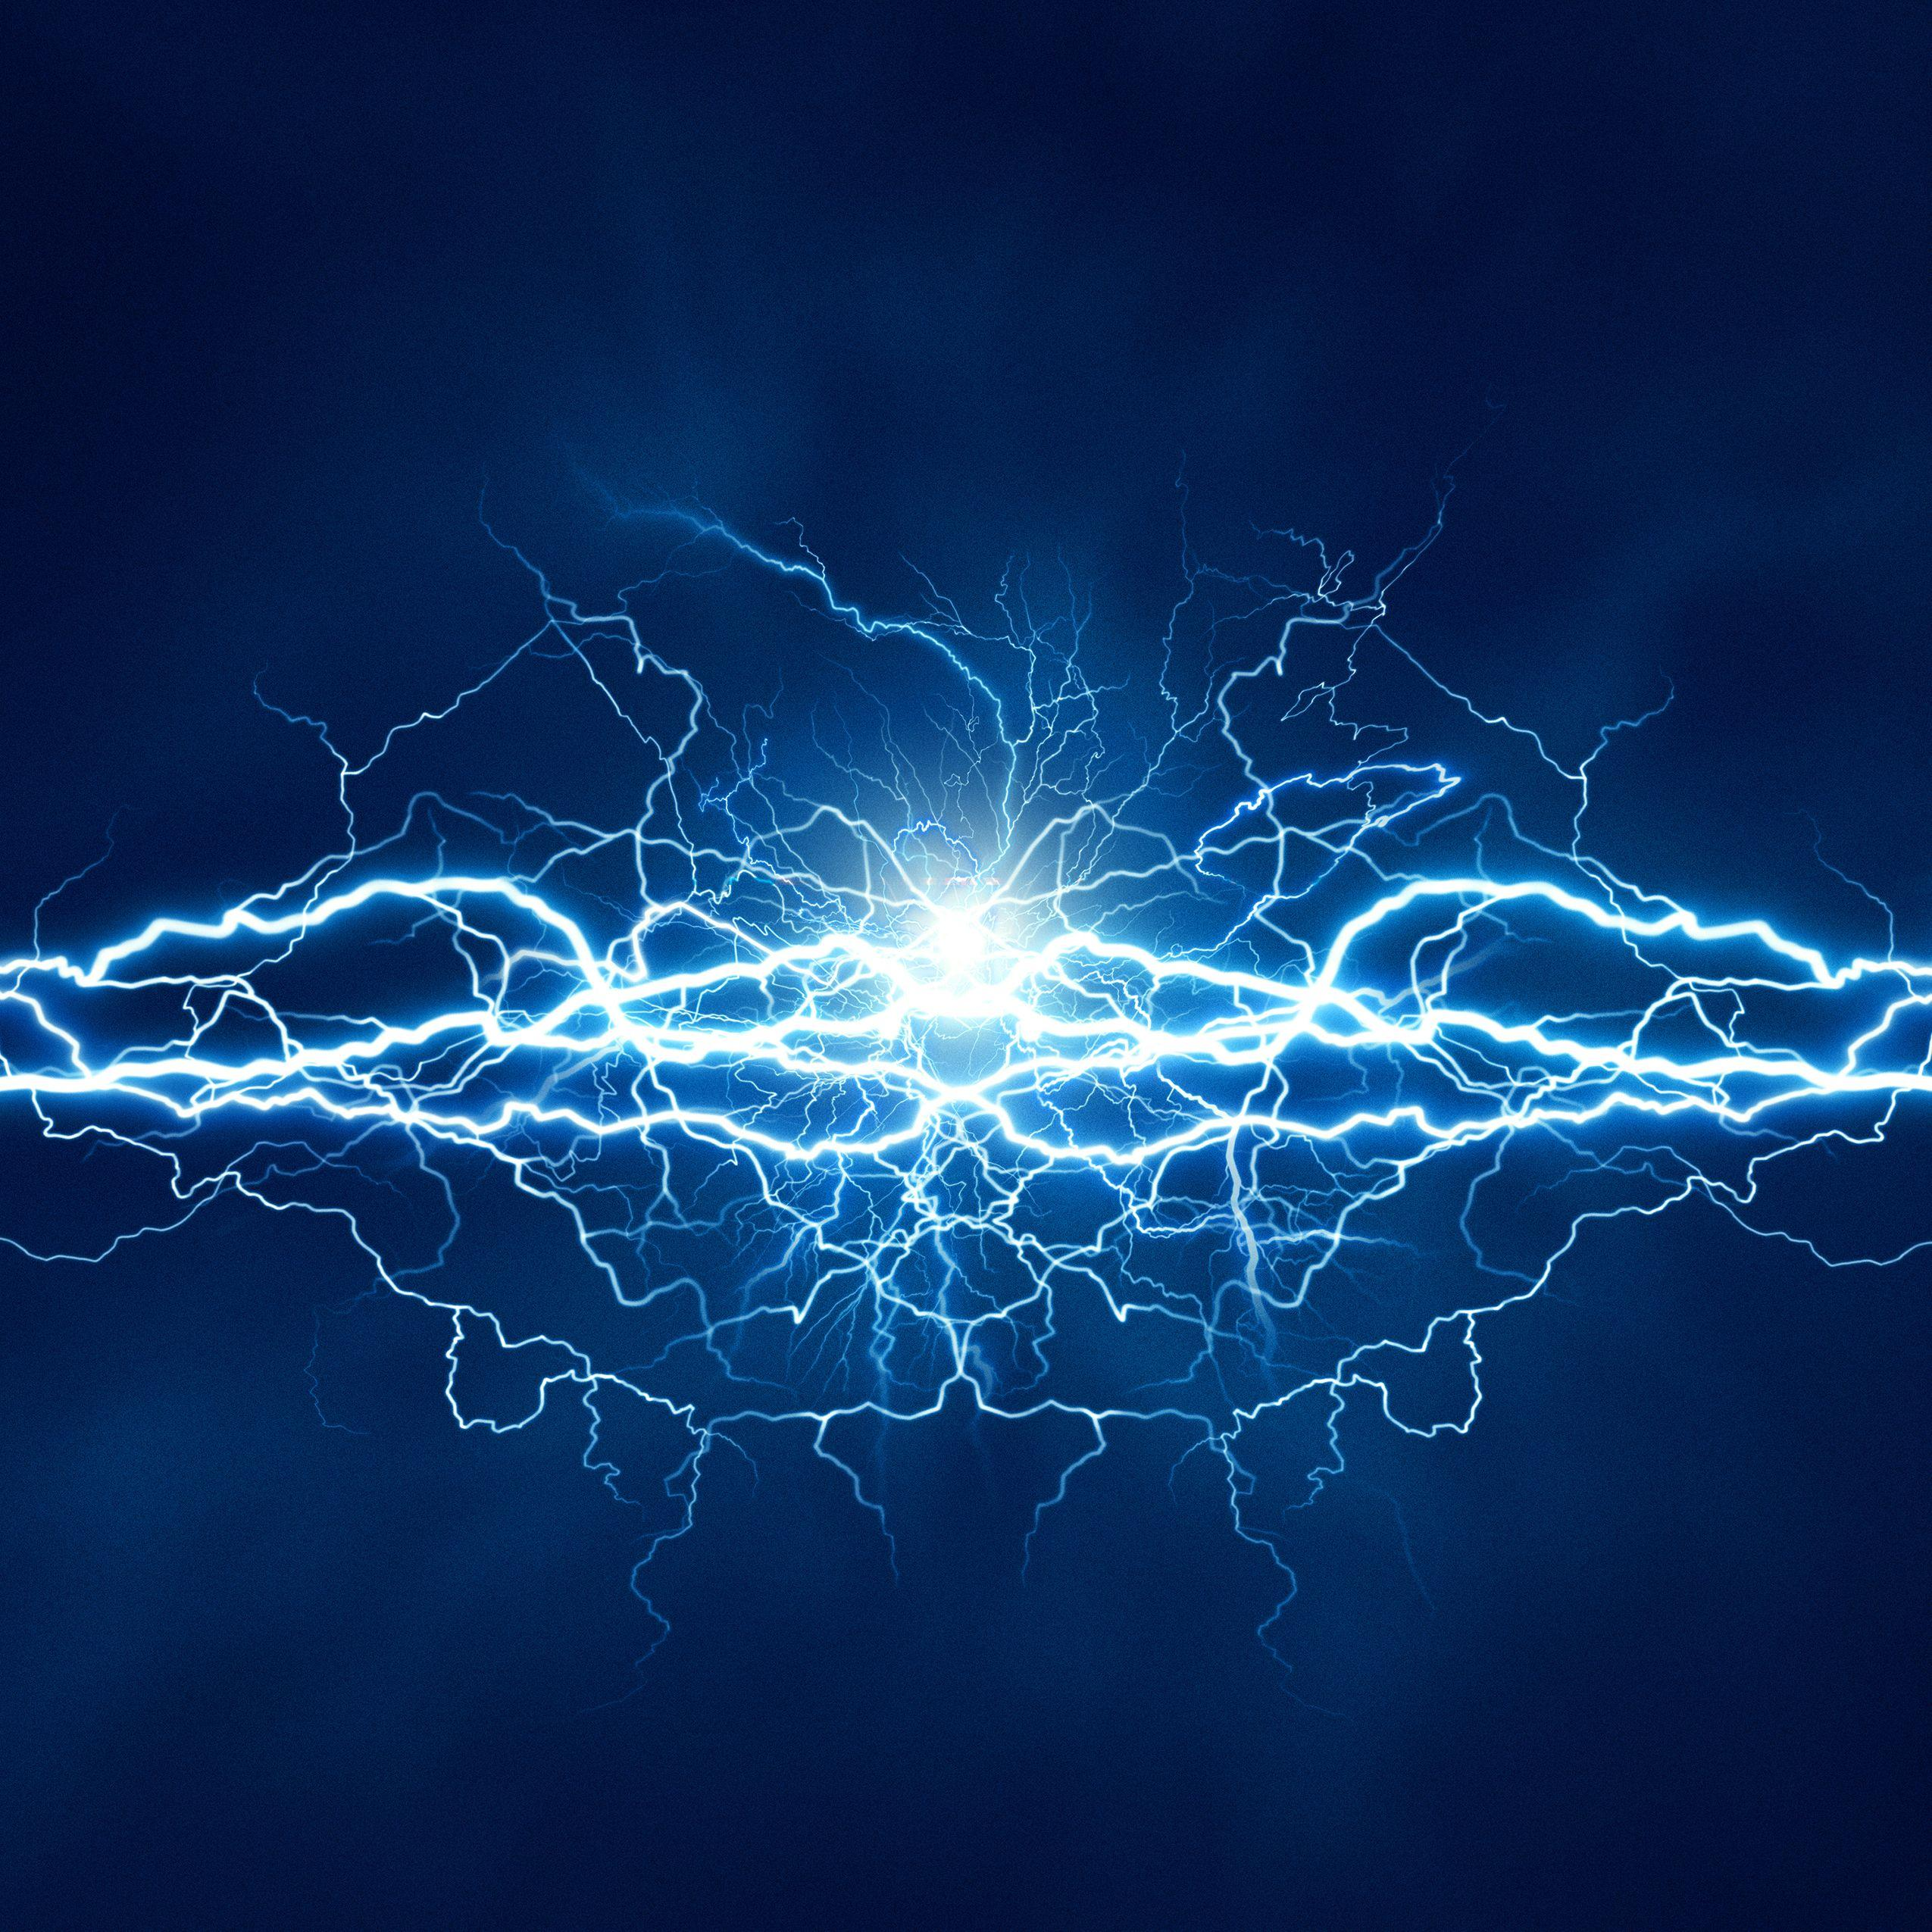 Electric Wallpapers   Top Electric Backgrounds   WallpaperAccess 2550x2550